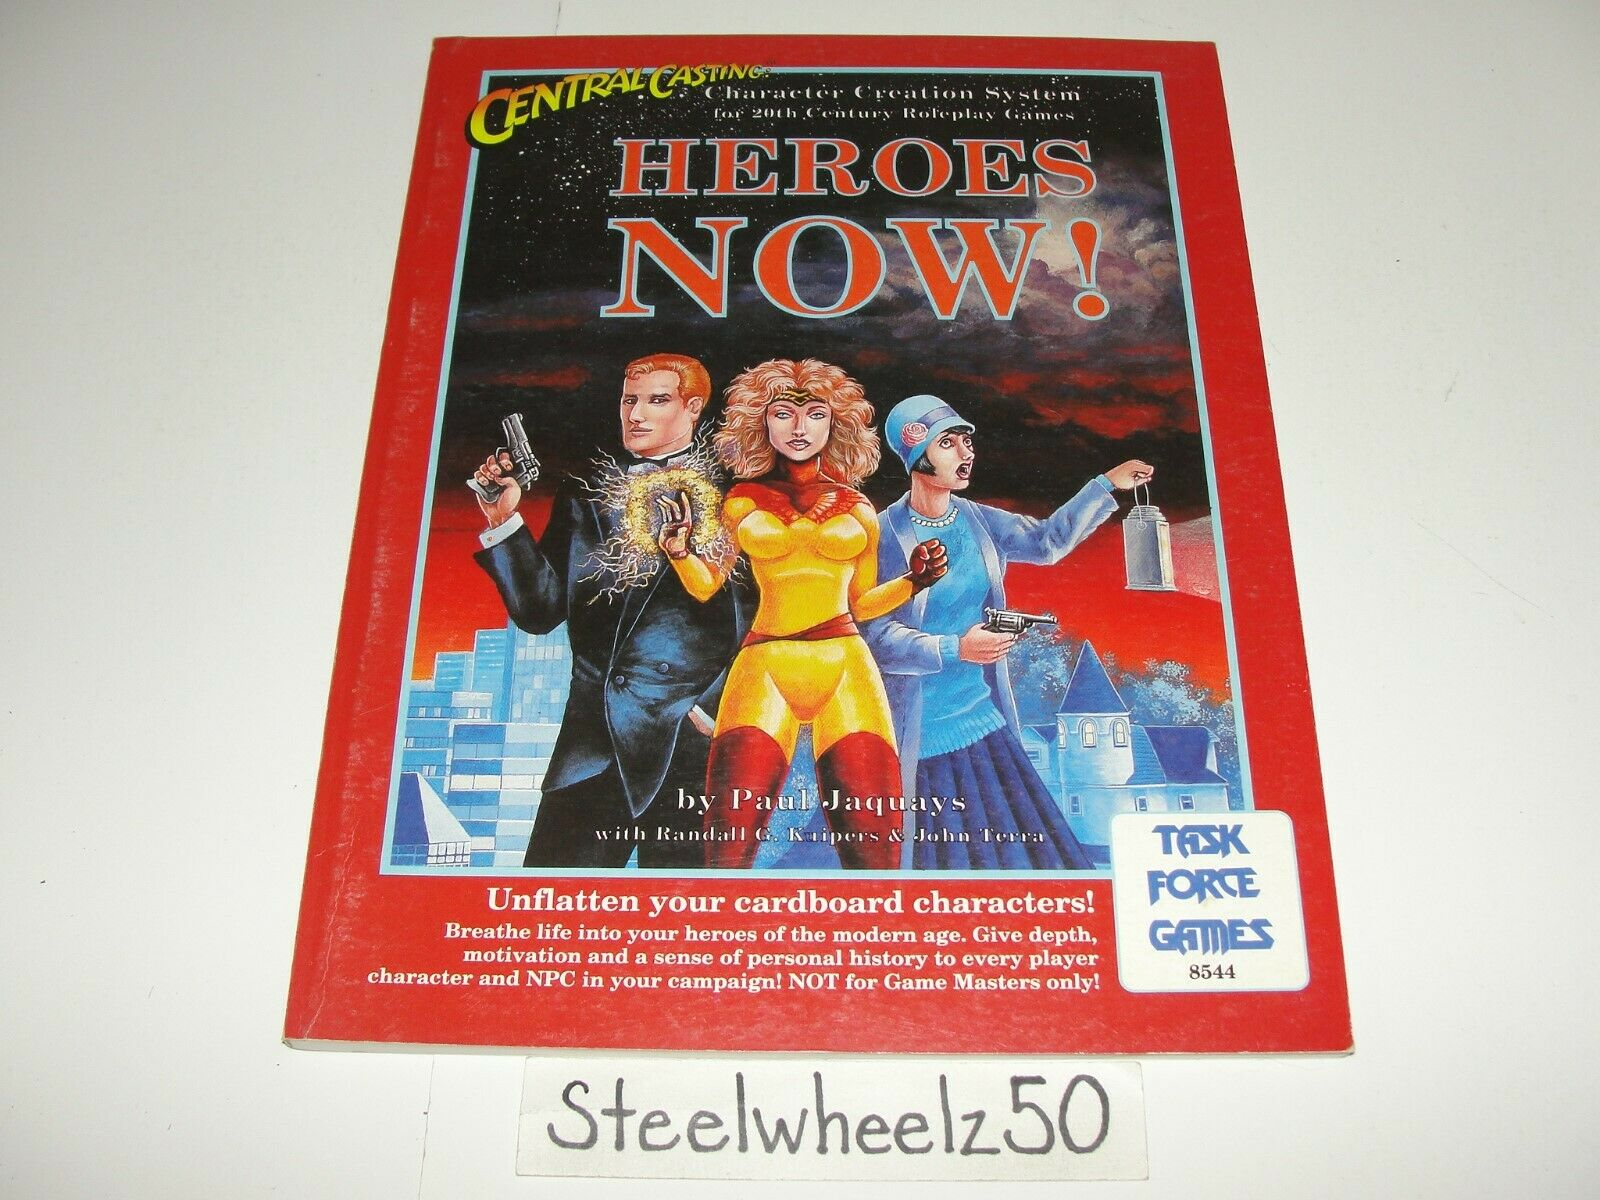 Central Casting Heroes  Now Task Force giocos Sci Fi RPG 8544 1991 Supplement RARE  prezzo basso